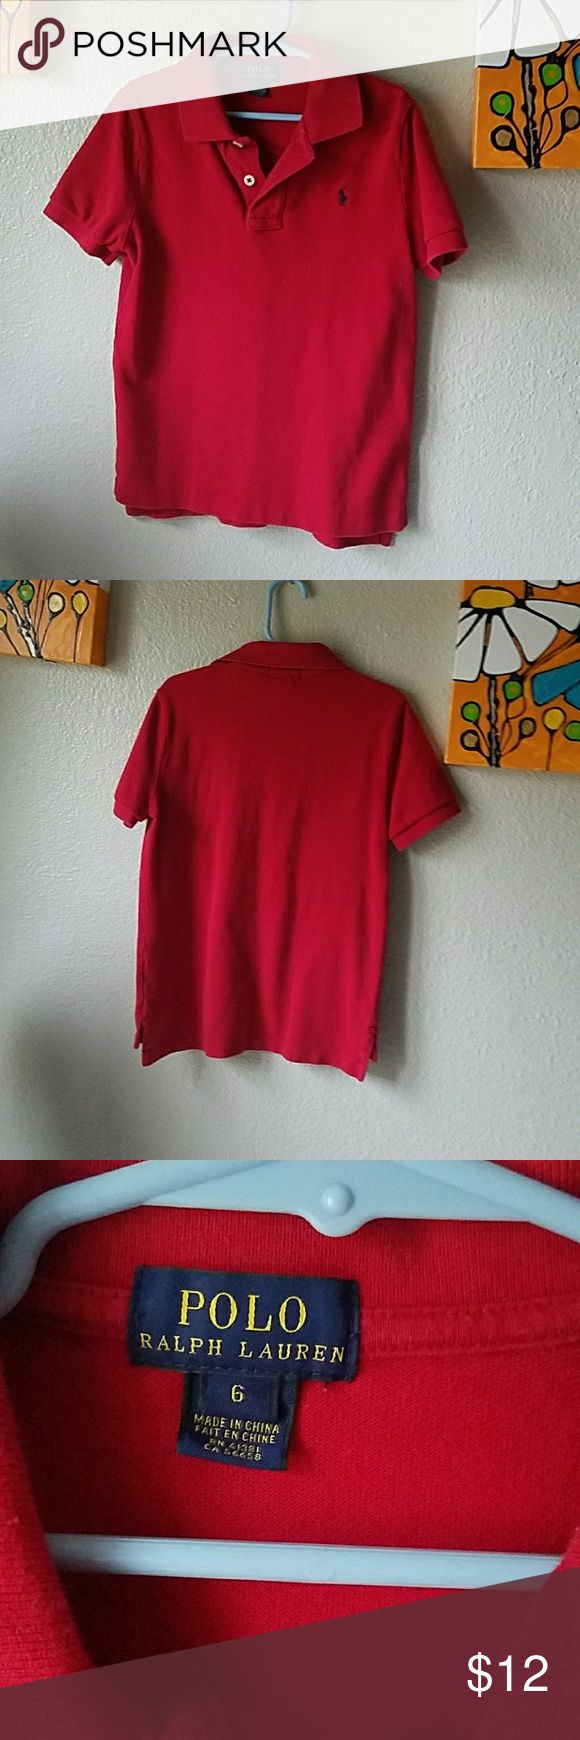 Red Ralph Lauren Polo collared shirt sz 6 sm logo Vibrant red collared shirt by Polo Ralph Lauren. My son loves wearing polos and button downs, so I bought a few of these new from the outlet.  Sz 6, very good condition. Polo by Ralph Lauren Shirts & Tops Polos